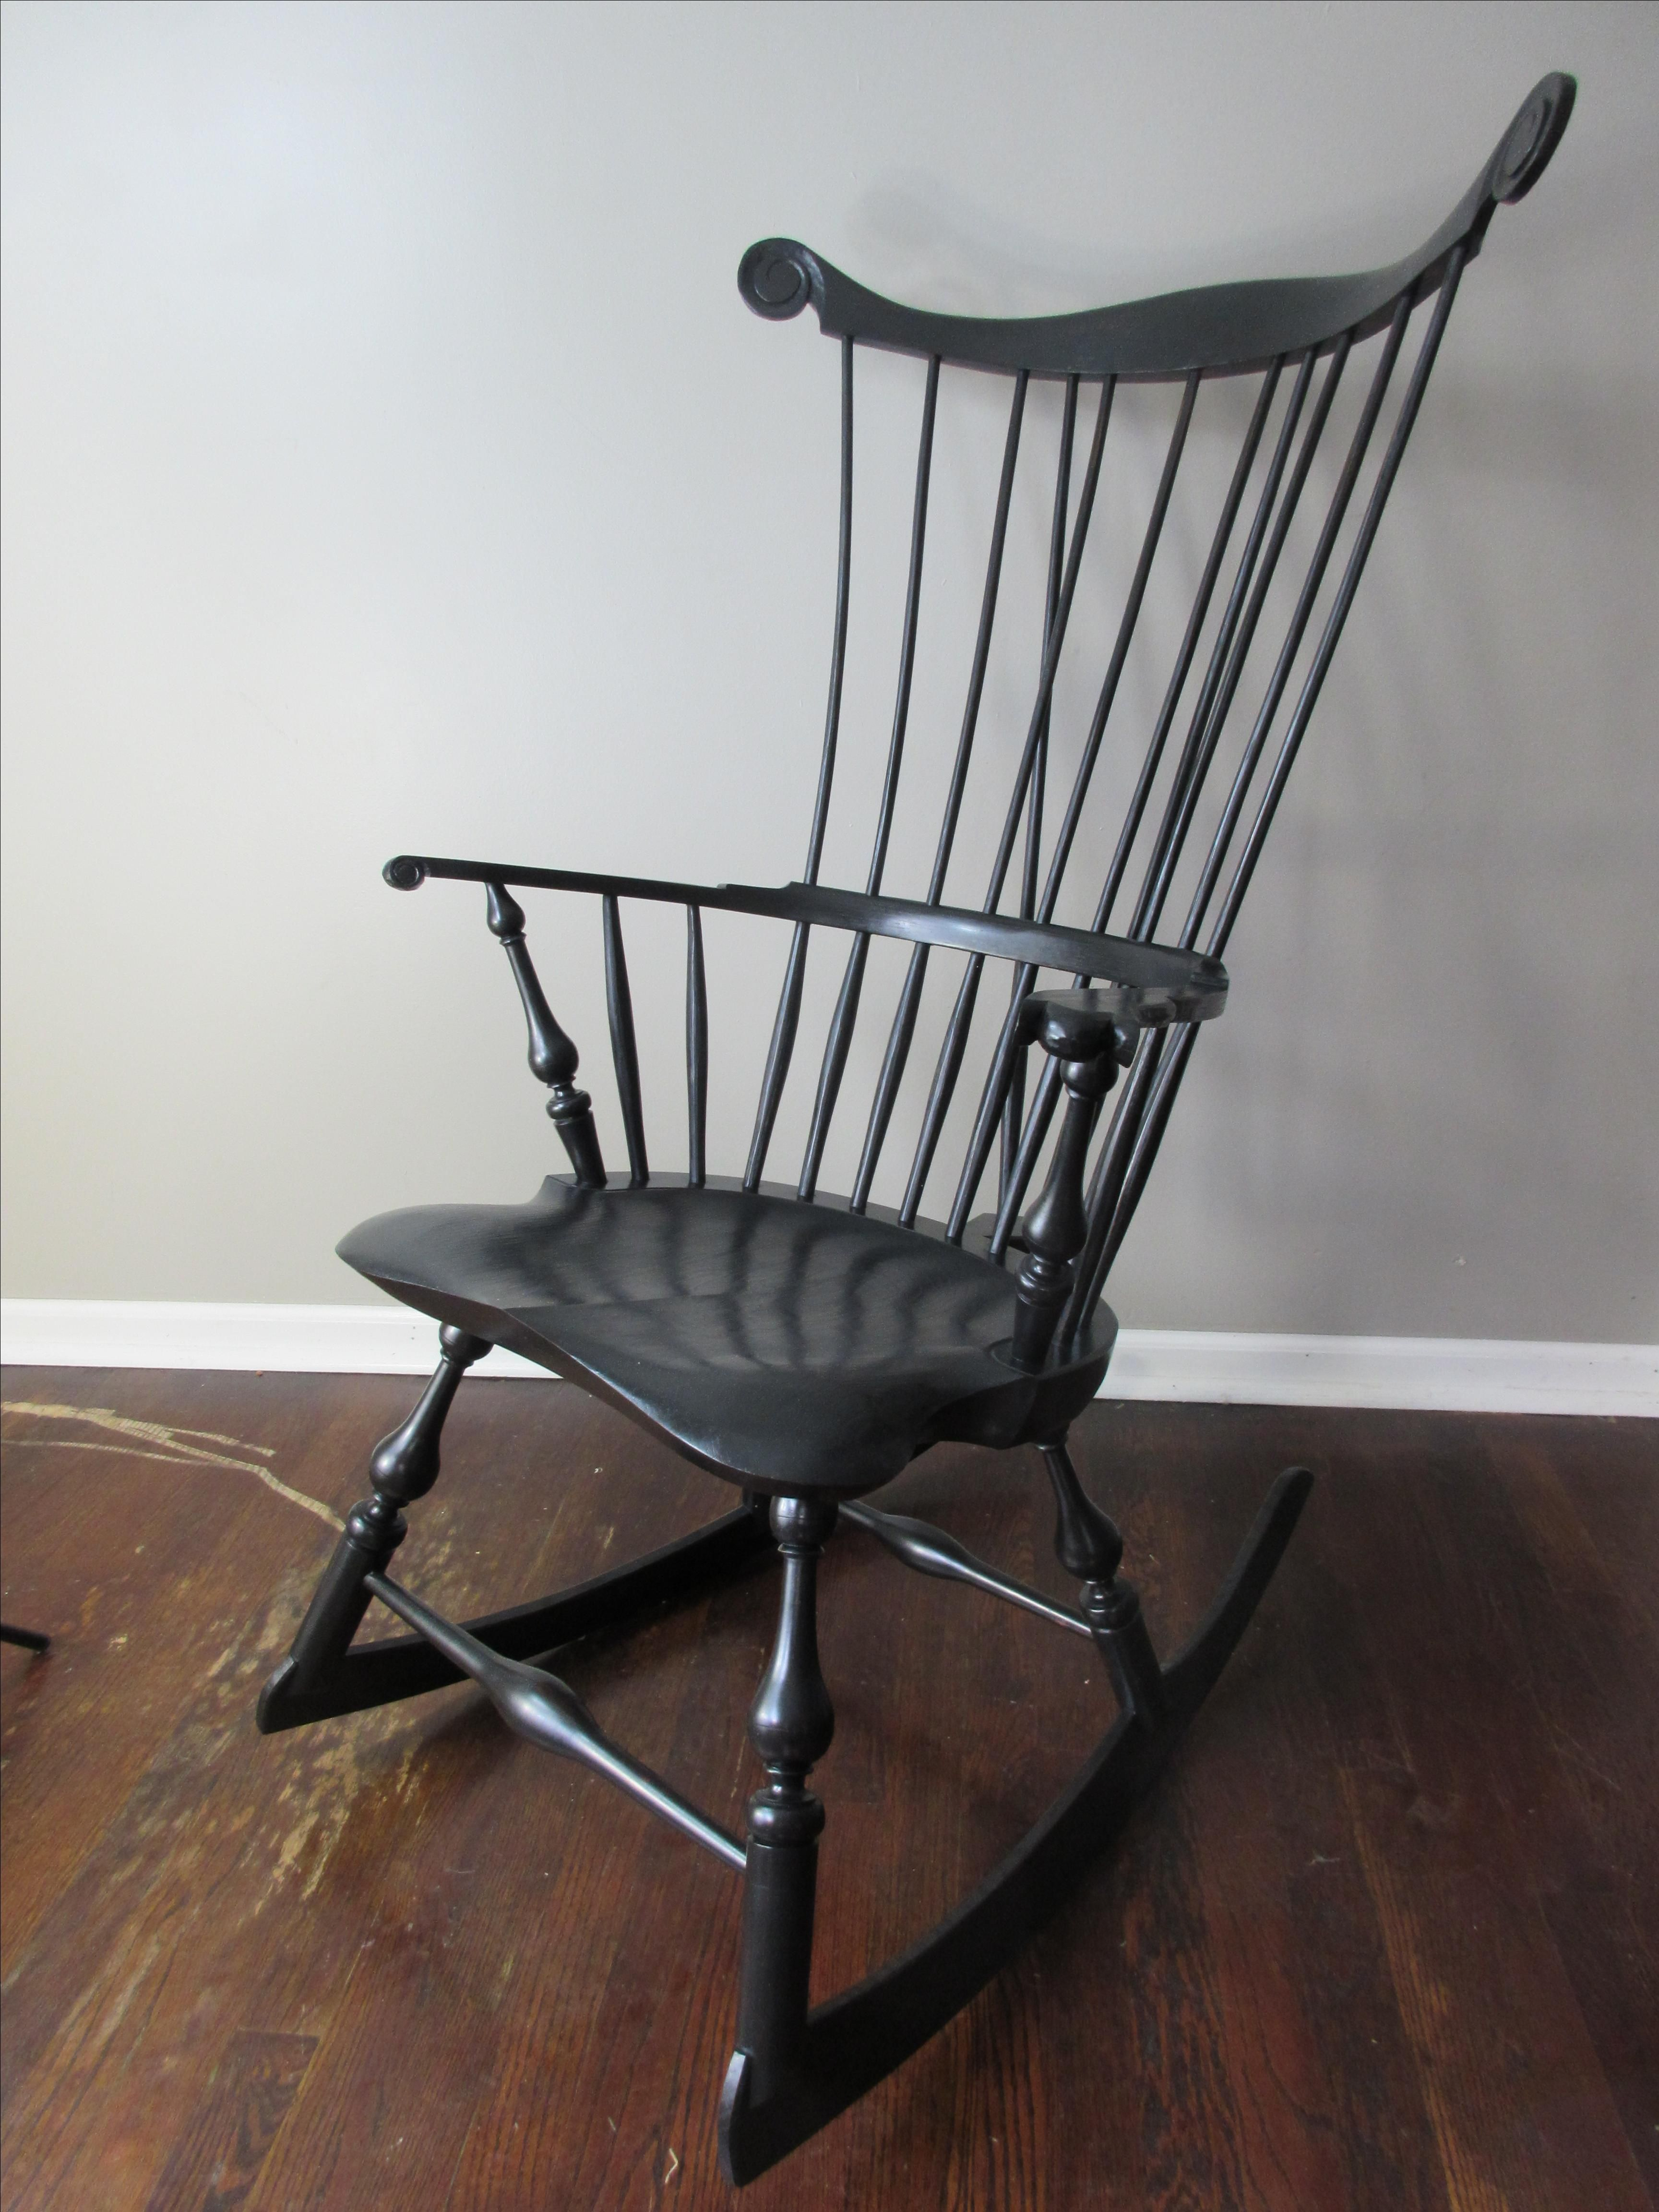 Hand Crafted Comb Back Windsor Rocking Chair by Luke A